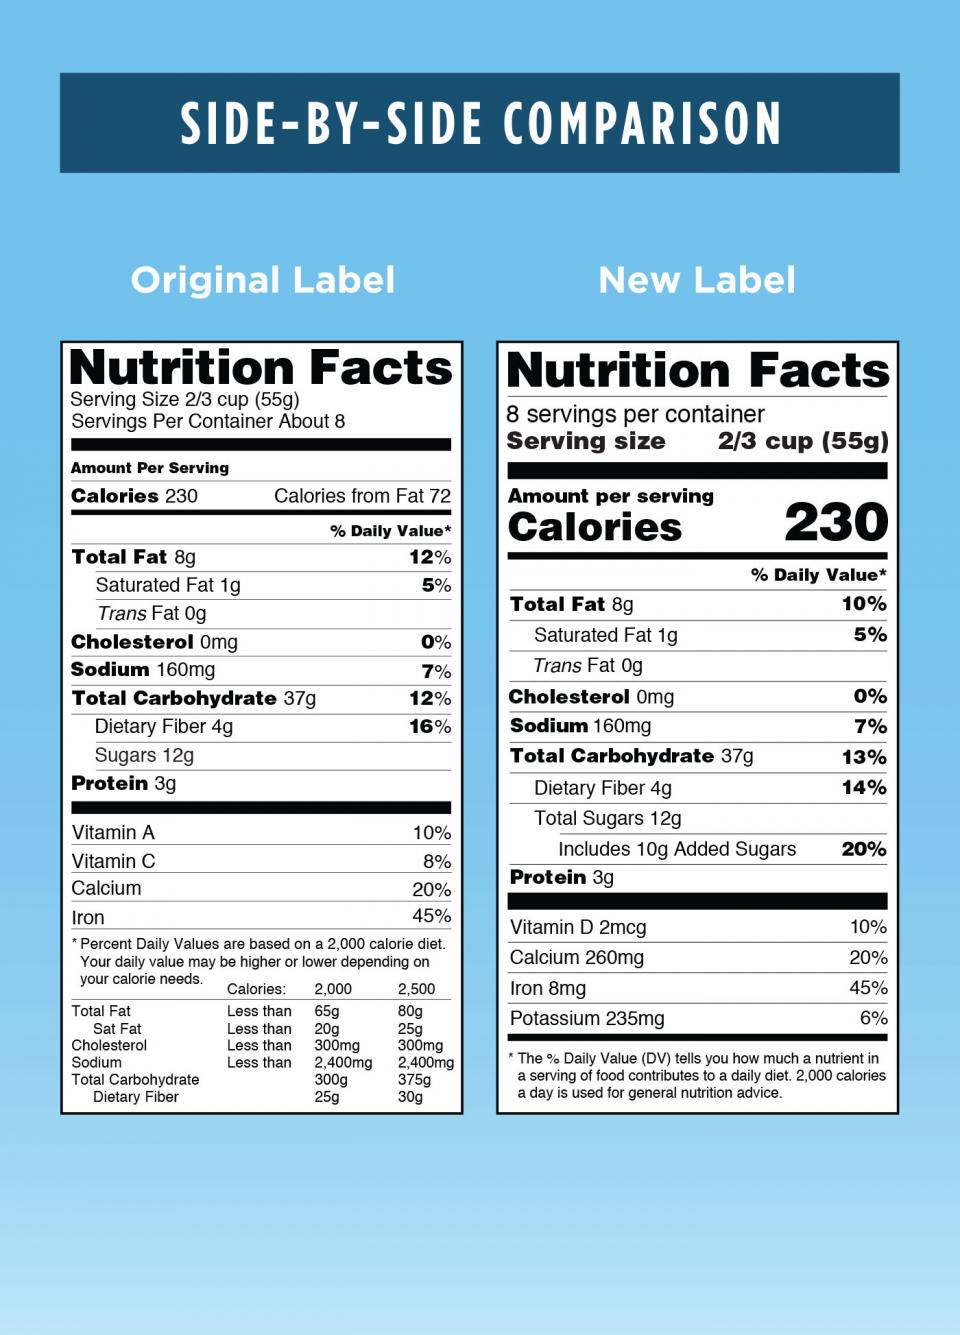 image comparing old Nutrition Facts label to new label